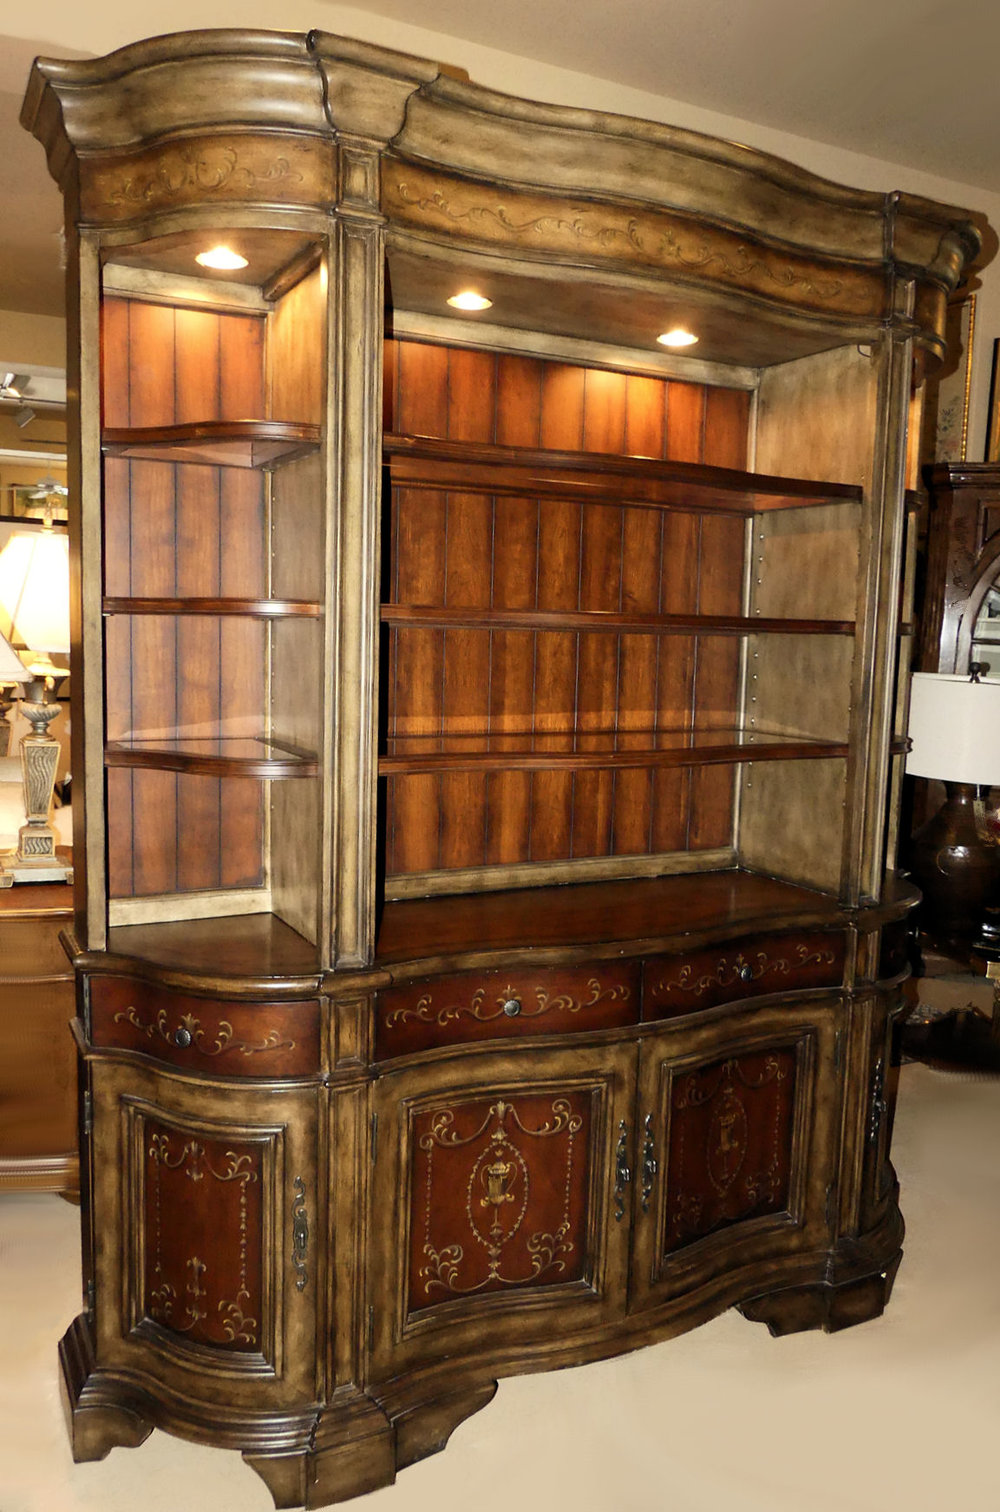 Hooker Seven Seas Serpentine Credenza with Lighted Hutch  $1,695